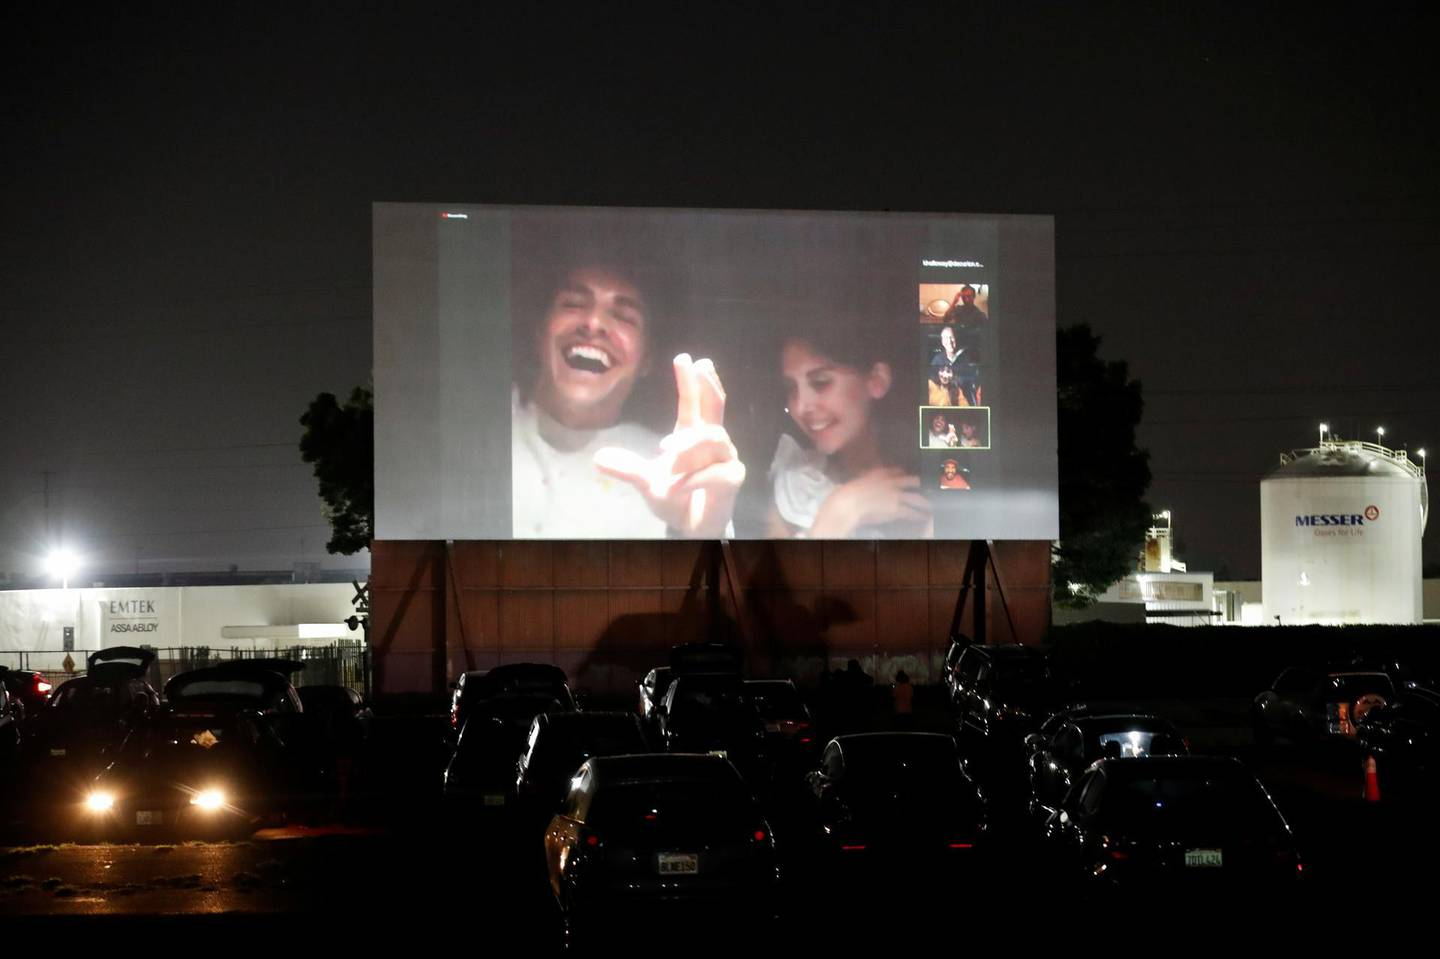 """Director Dave Franco and cast member Alison Brie react as they take part in a Q&A session via Zoom from a vehicle after an advanced screening for the movie """"The Rental"""" at the Vineland Drive-In movie theater in City of Industry, California, U.S. June 18, 2020. REUTERS/Mario Anzuoni"""